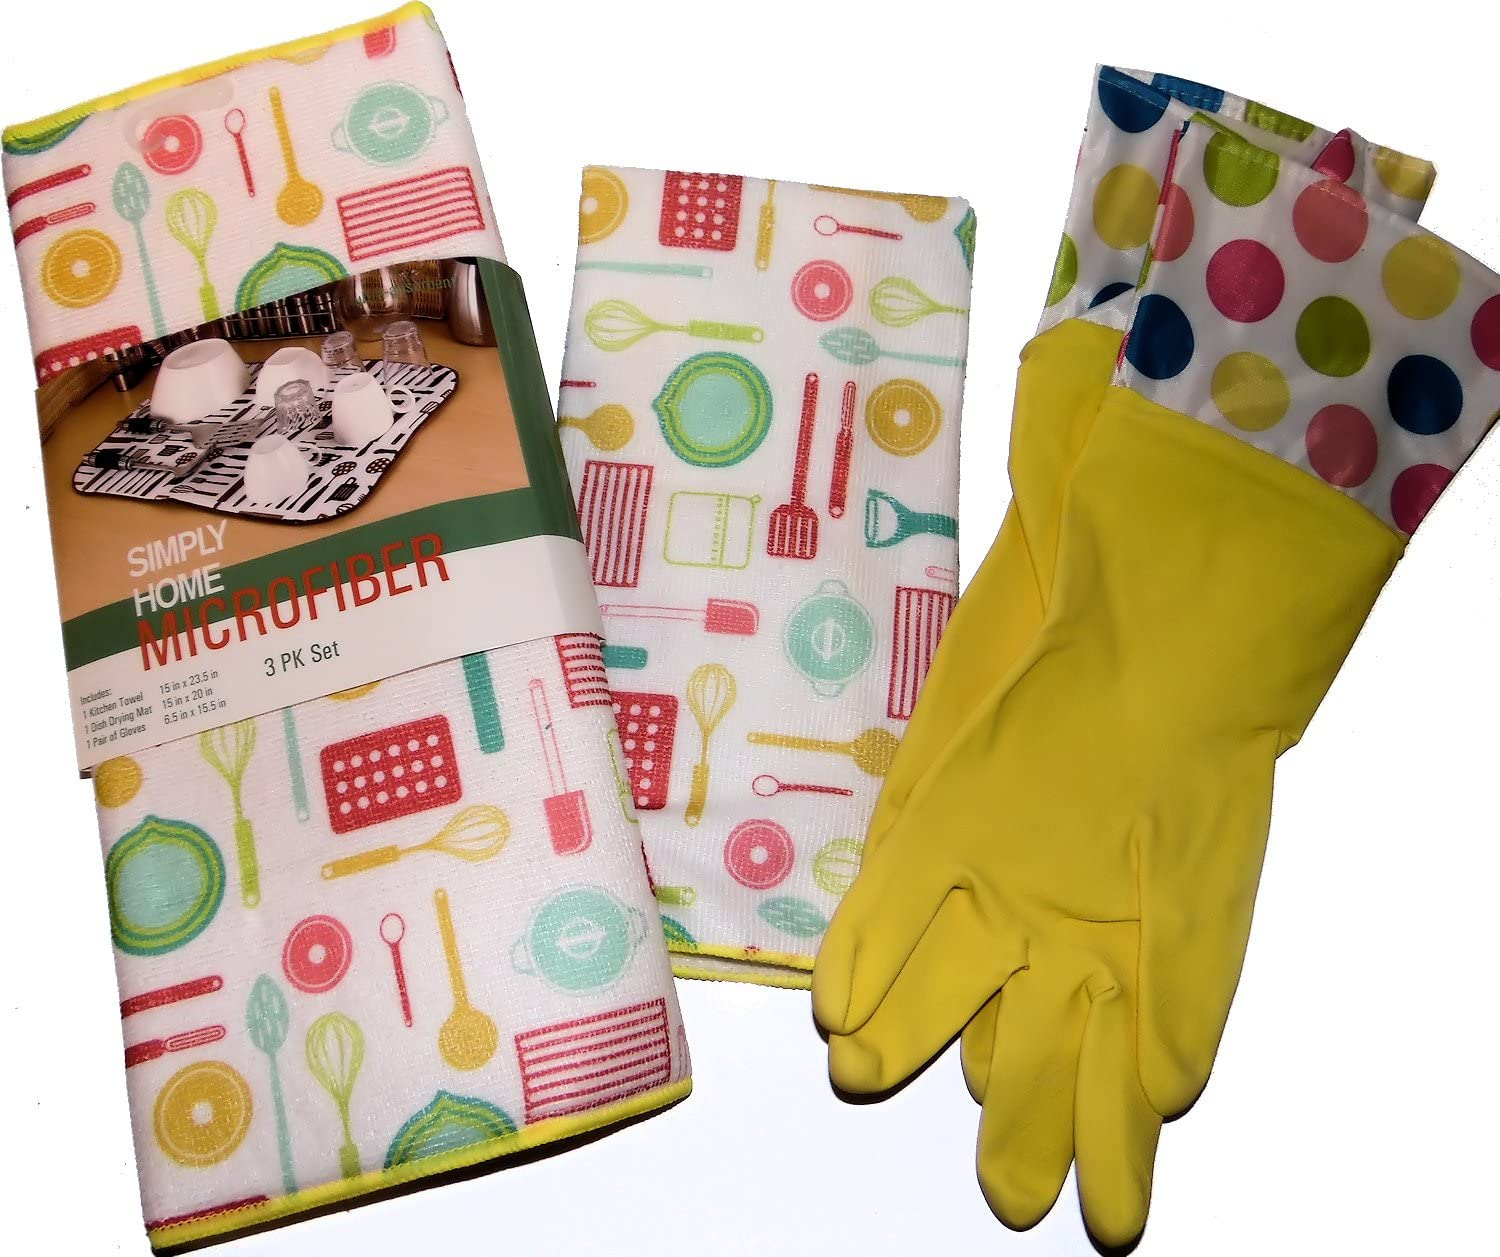 Towel /& Gloves Simply Home Yellow Colorful Kitchen Gadgets Linen 3 Piece Gift Set Microfiber Drying Mat